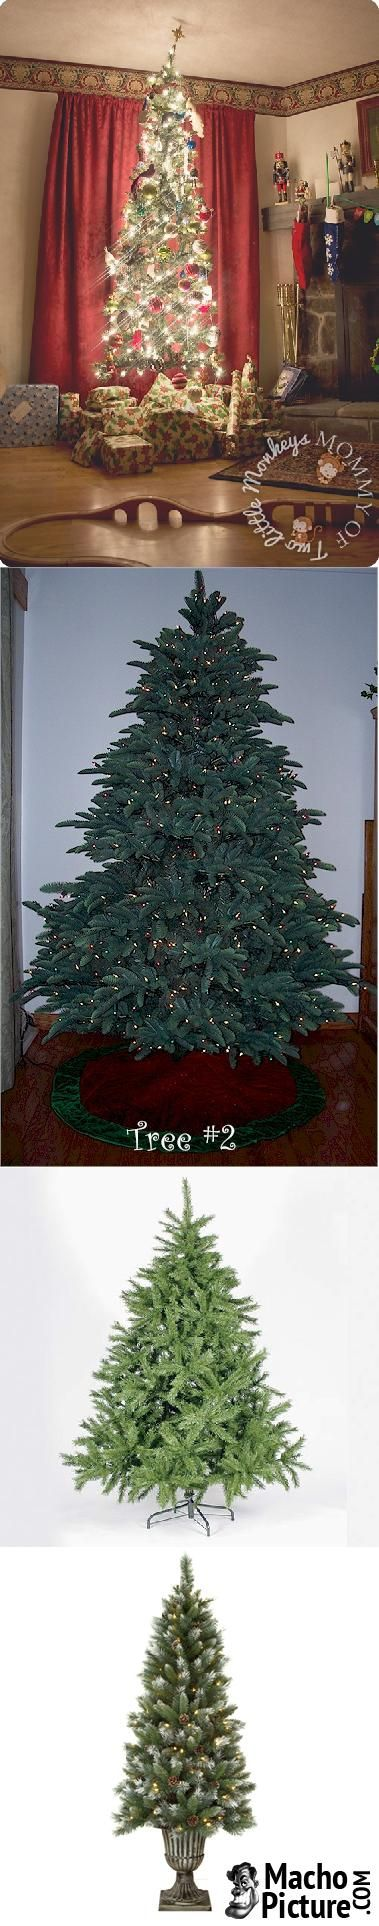 artificial christmas trees clearance 5 photo - Clearance Christmas Trees